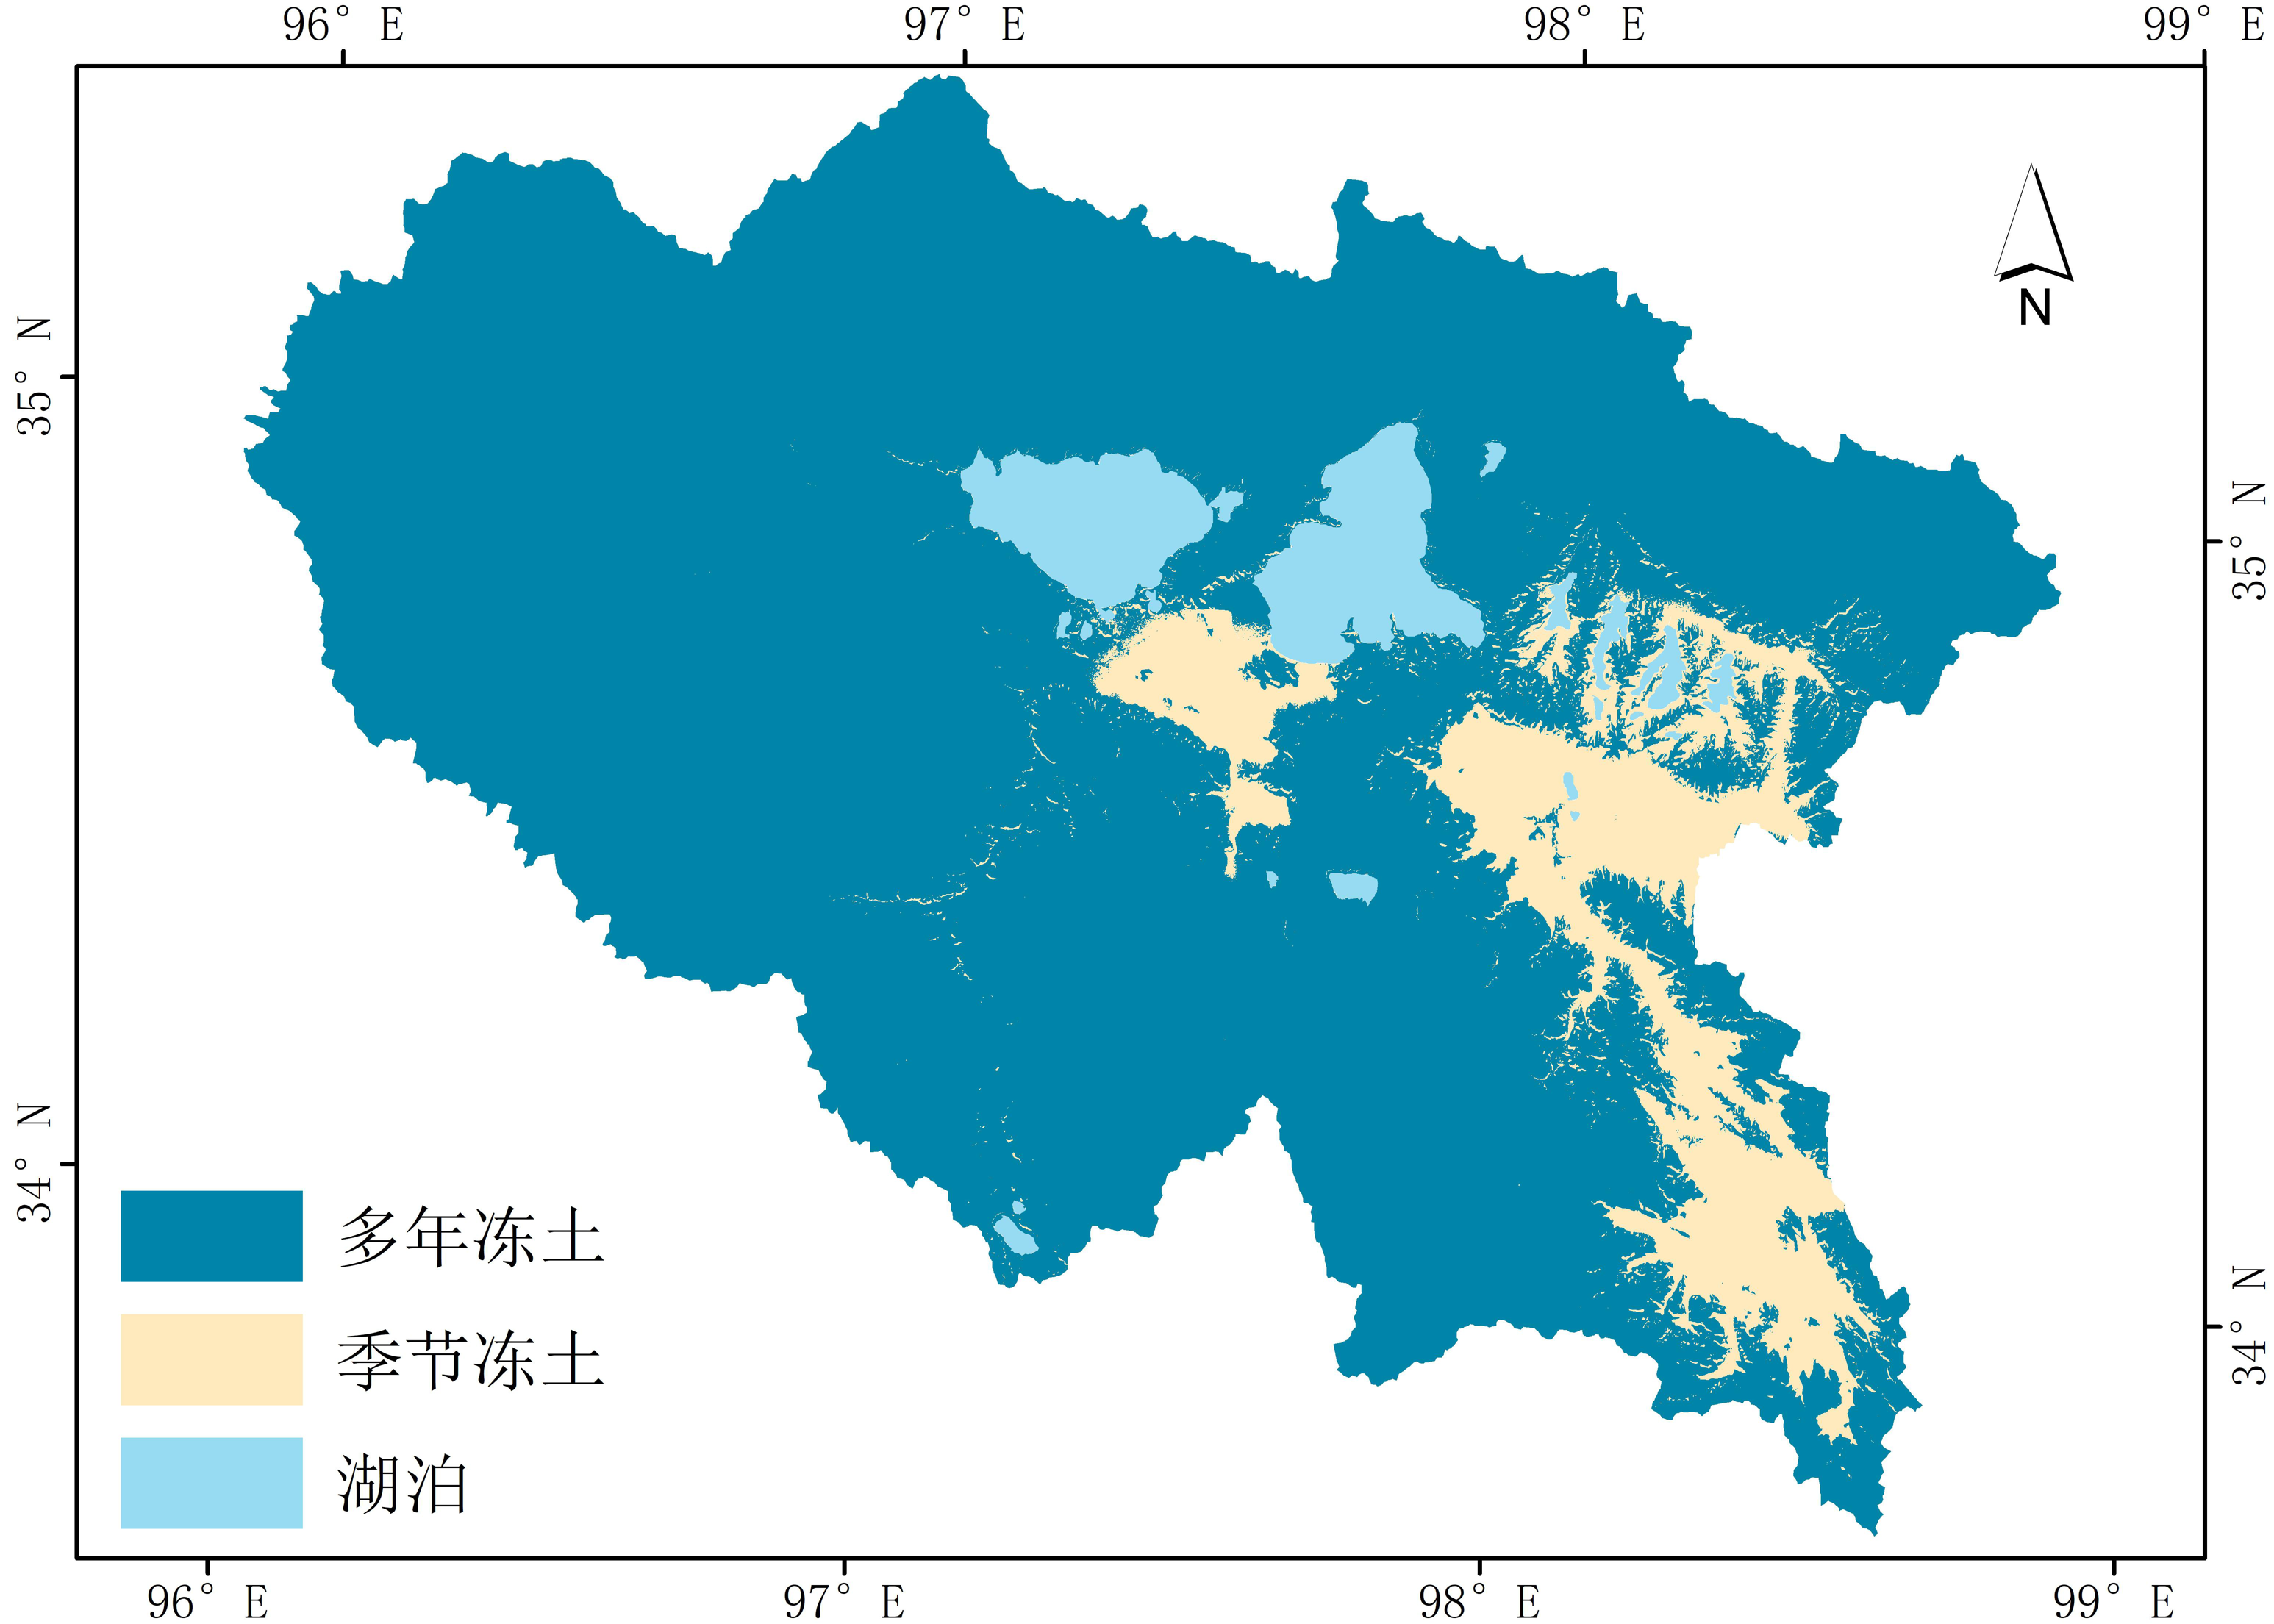 Distribution data of permafrost in the source area of the Yellow River (2013-2015)